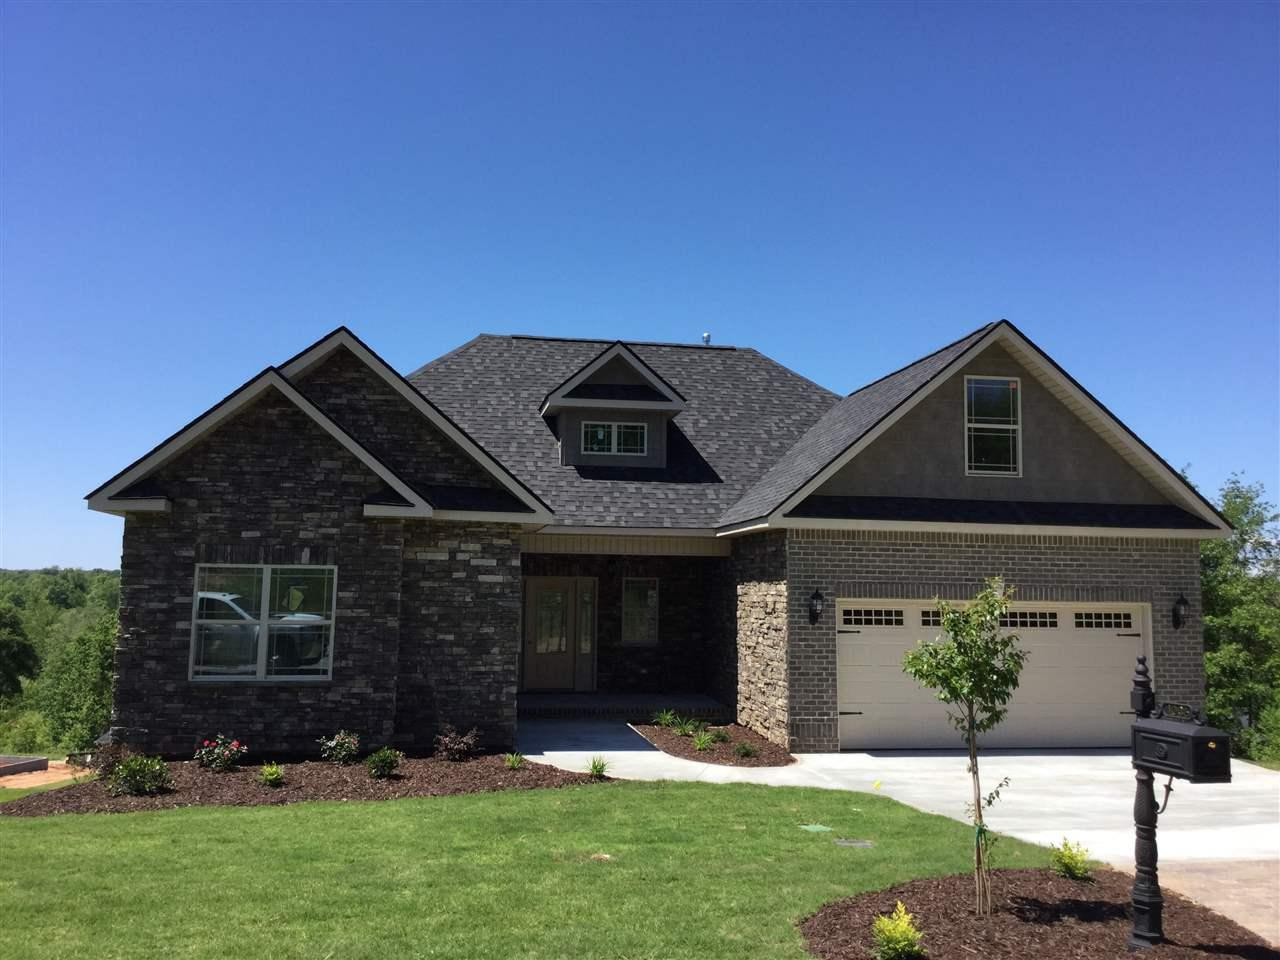 1035 Tuscany Drive, Anderson, SC 29621 (MLS #20182314) :: Les Walden Real Estate